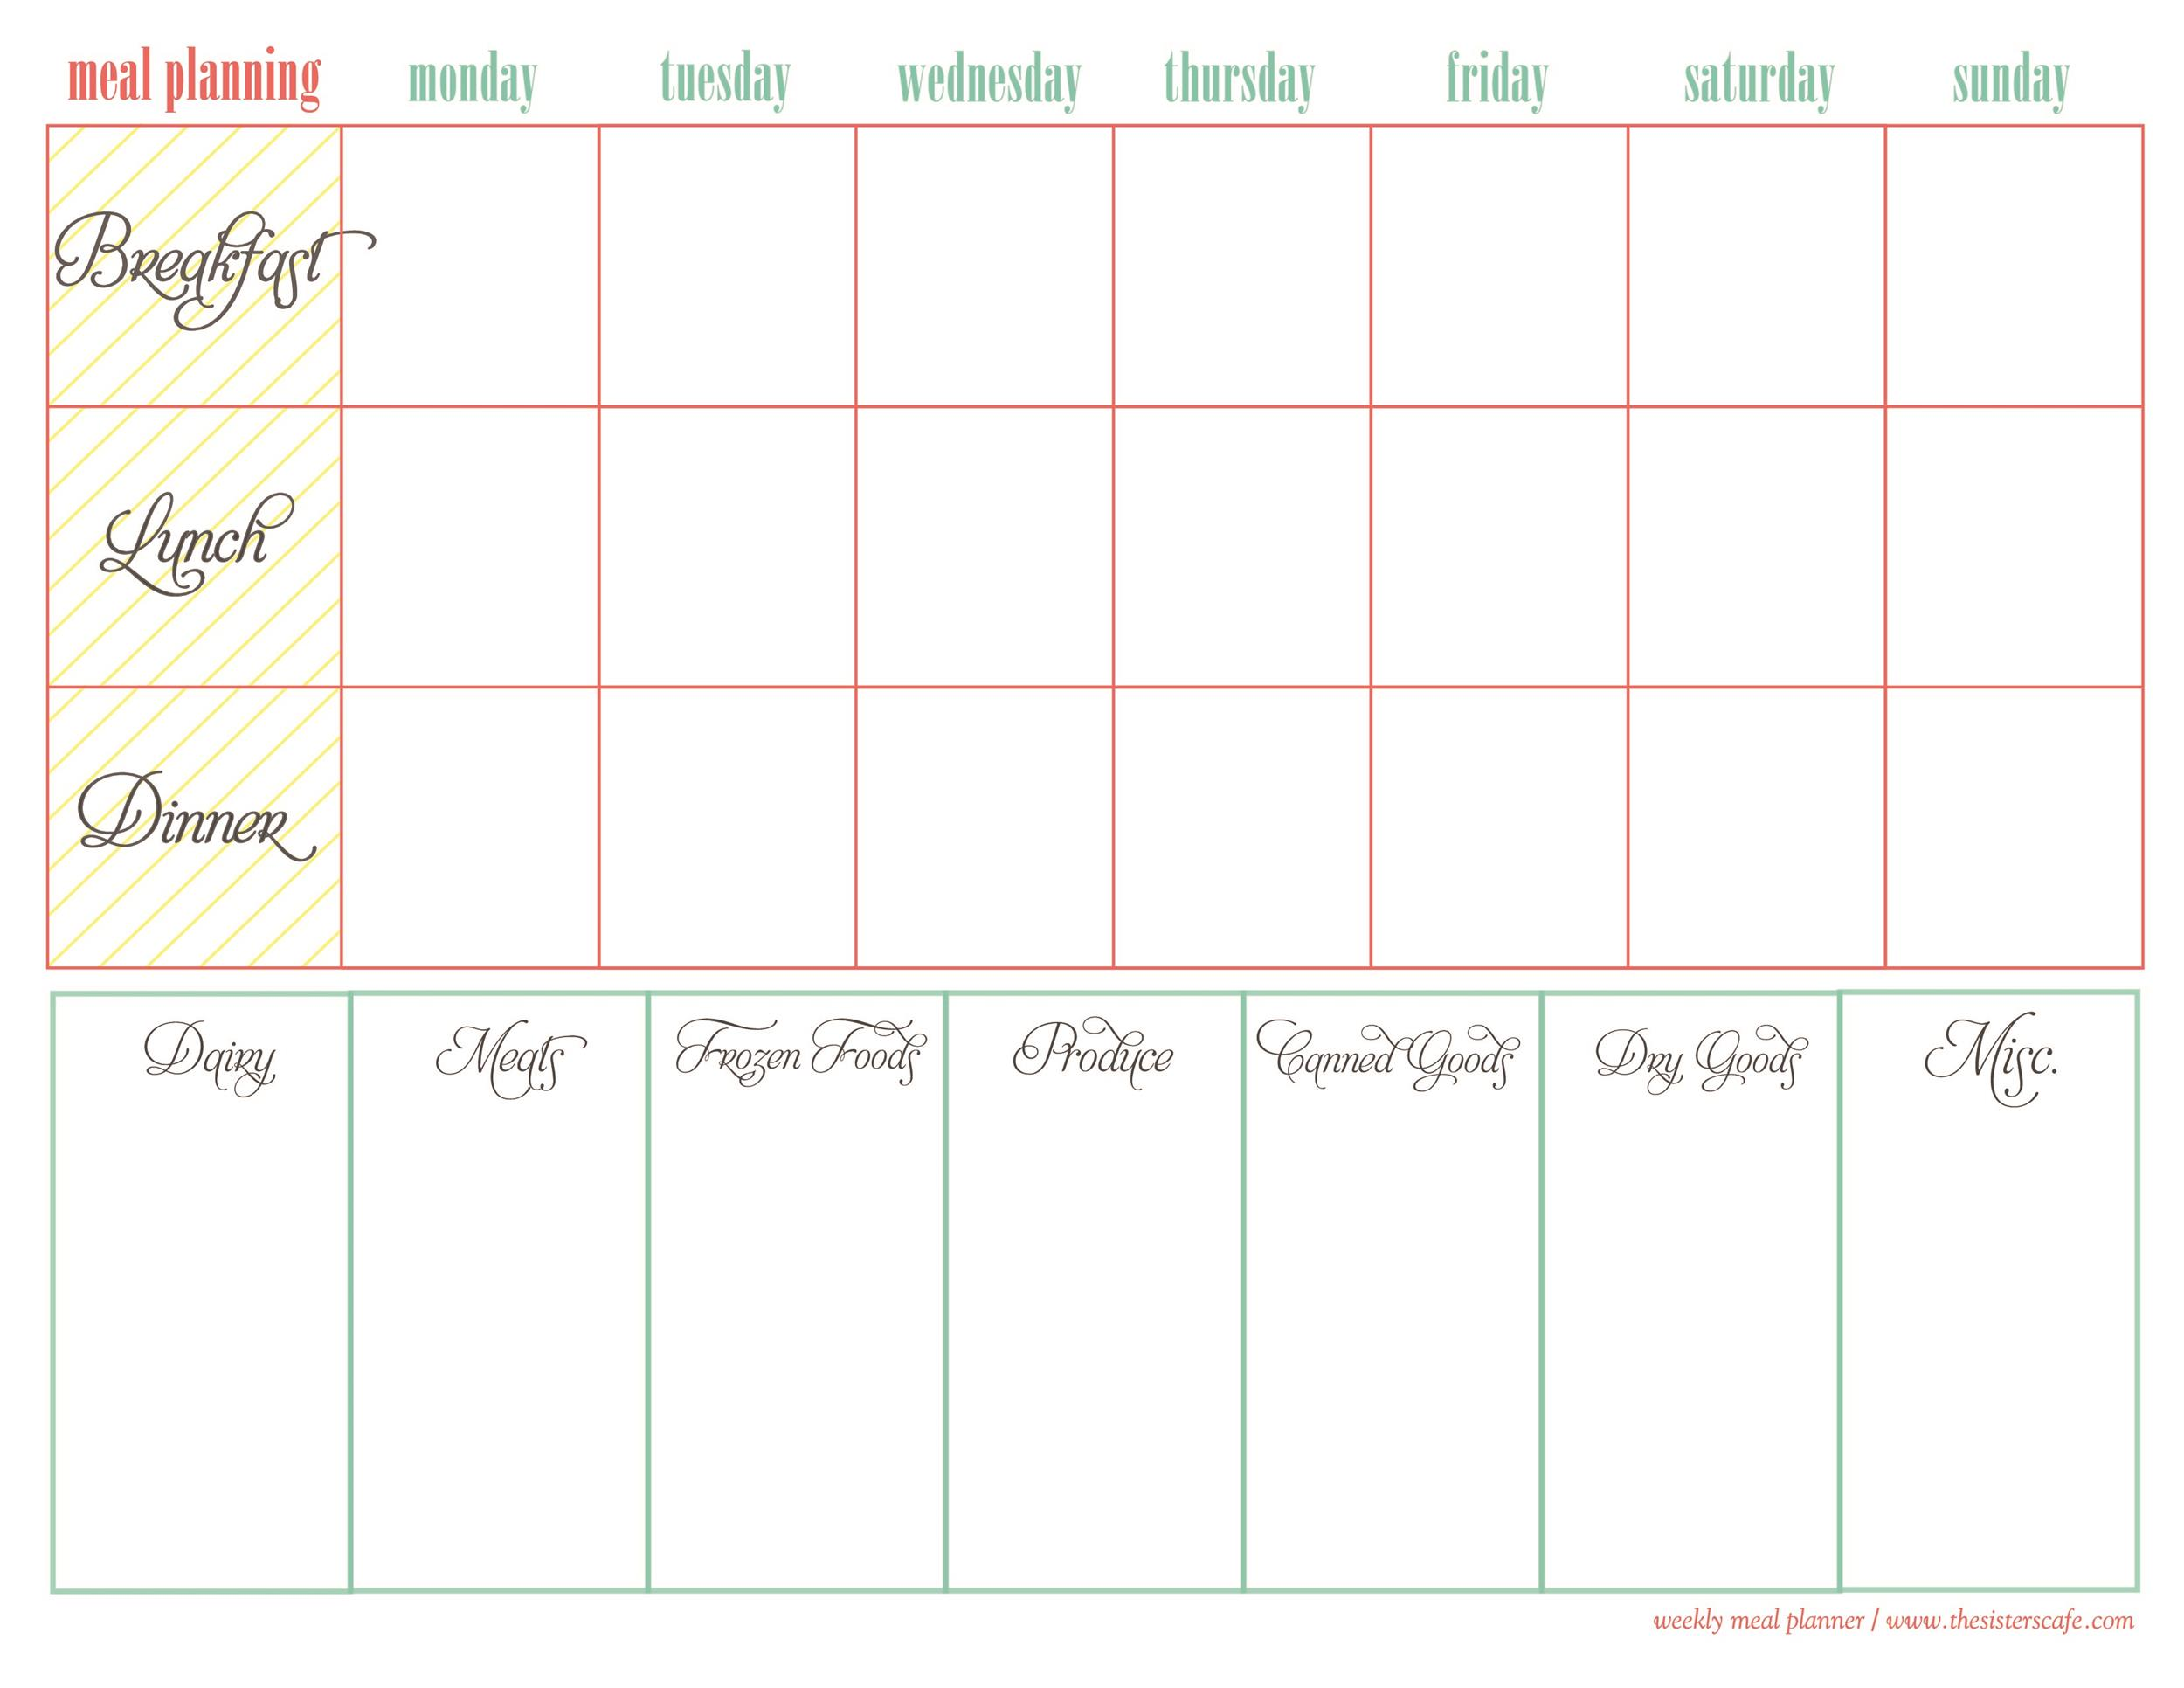 photograph regarding Free Printable Meal Planner Template called 40+ Weekly Dinner Creating Templates ᐅ Template Lab